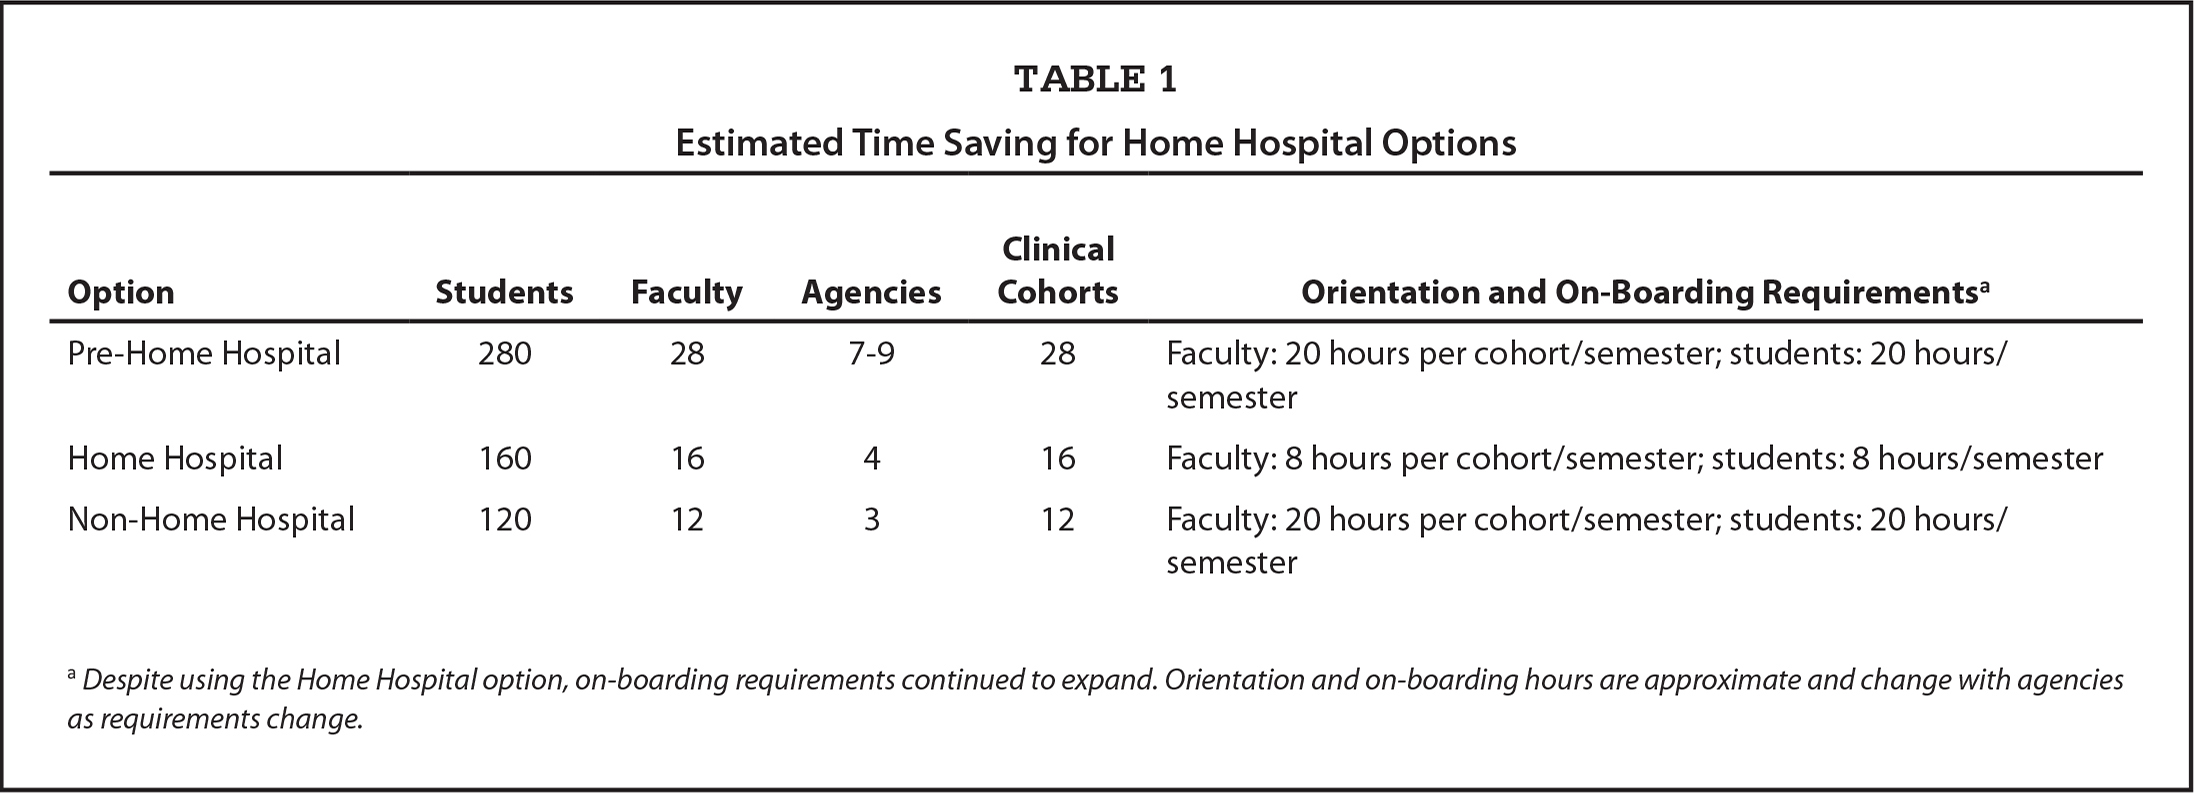 Estimated Time Saving for Home Hospital Options